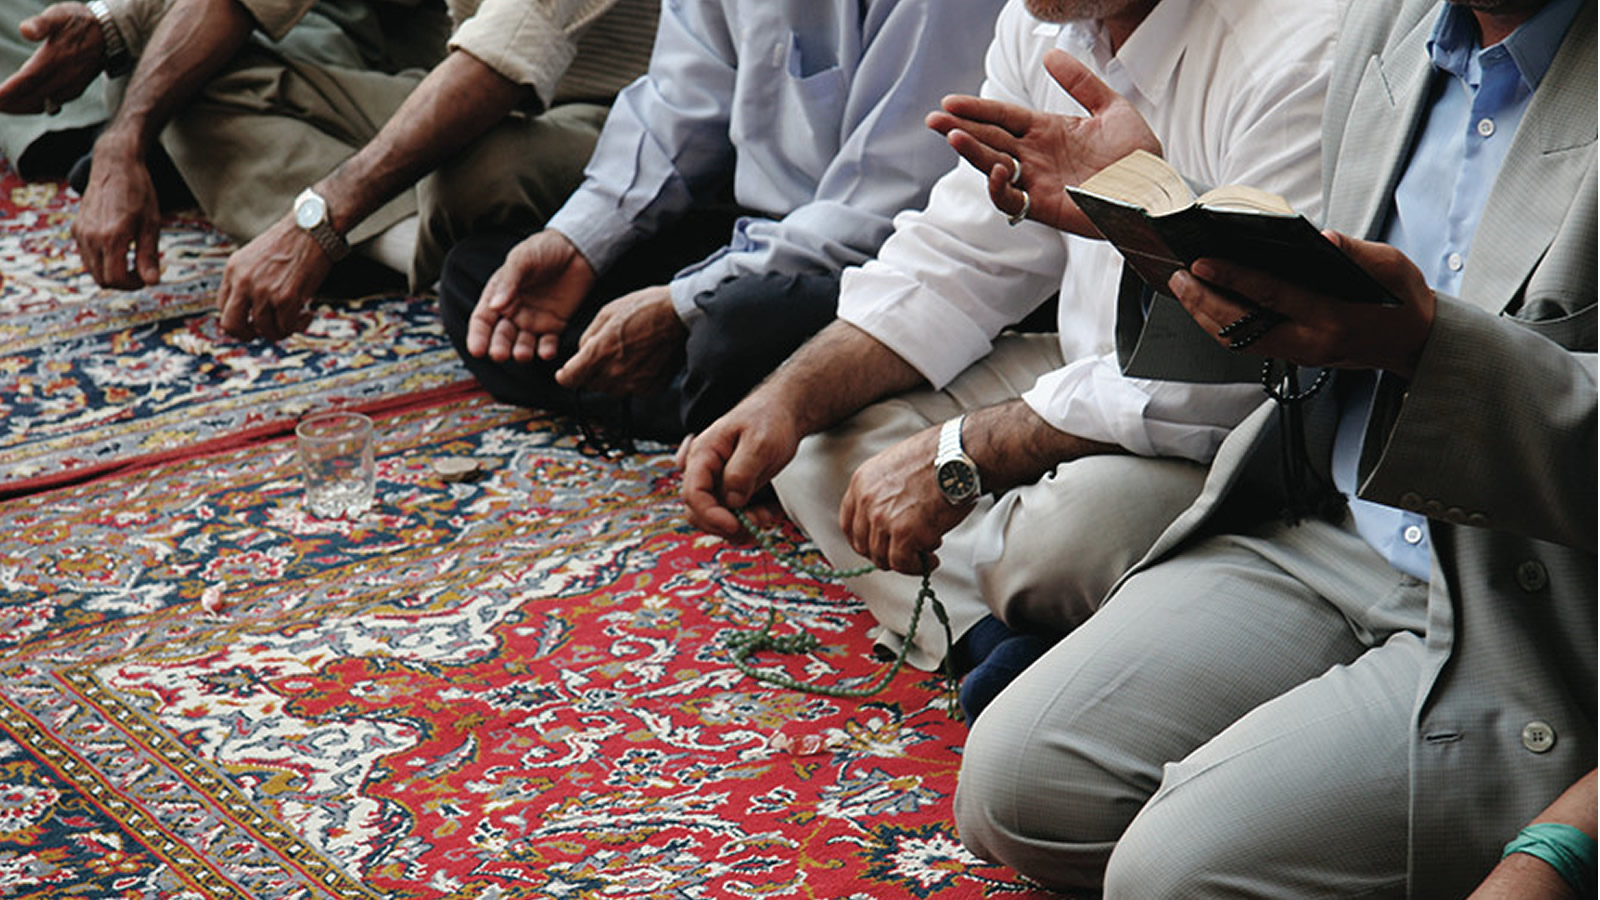 Muslim men in suits praying.